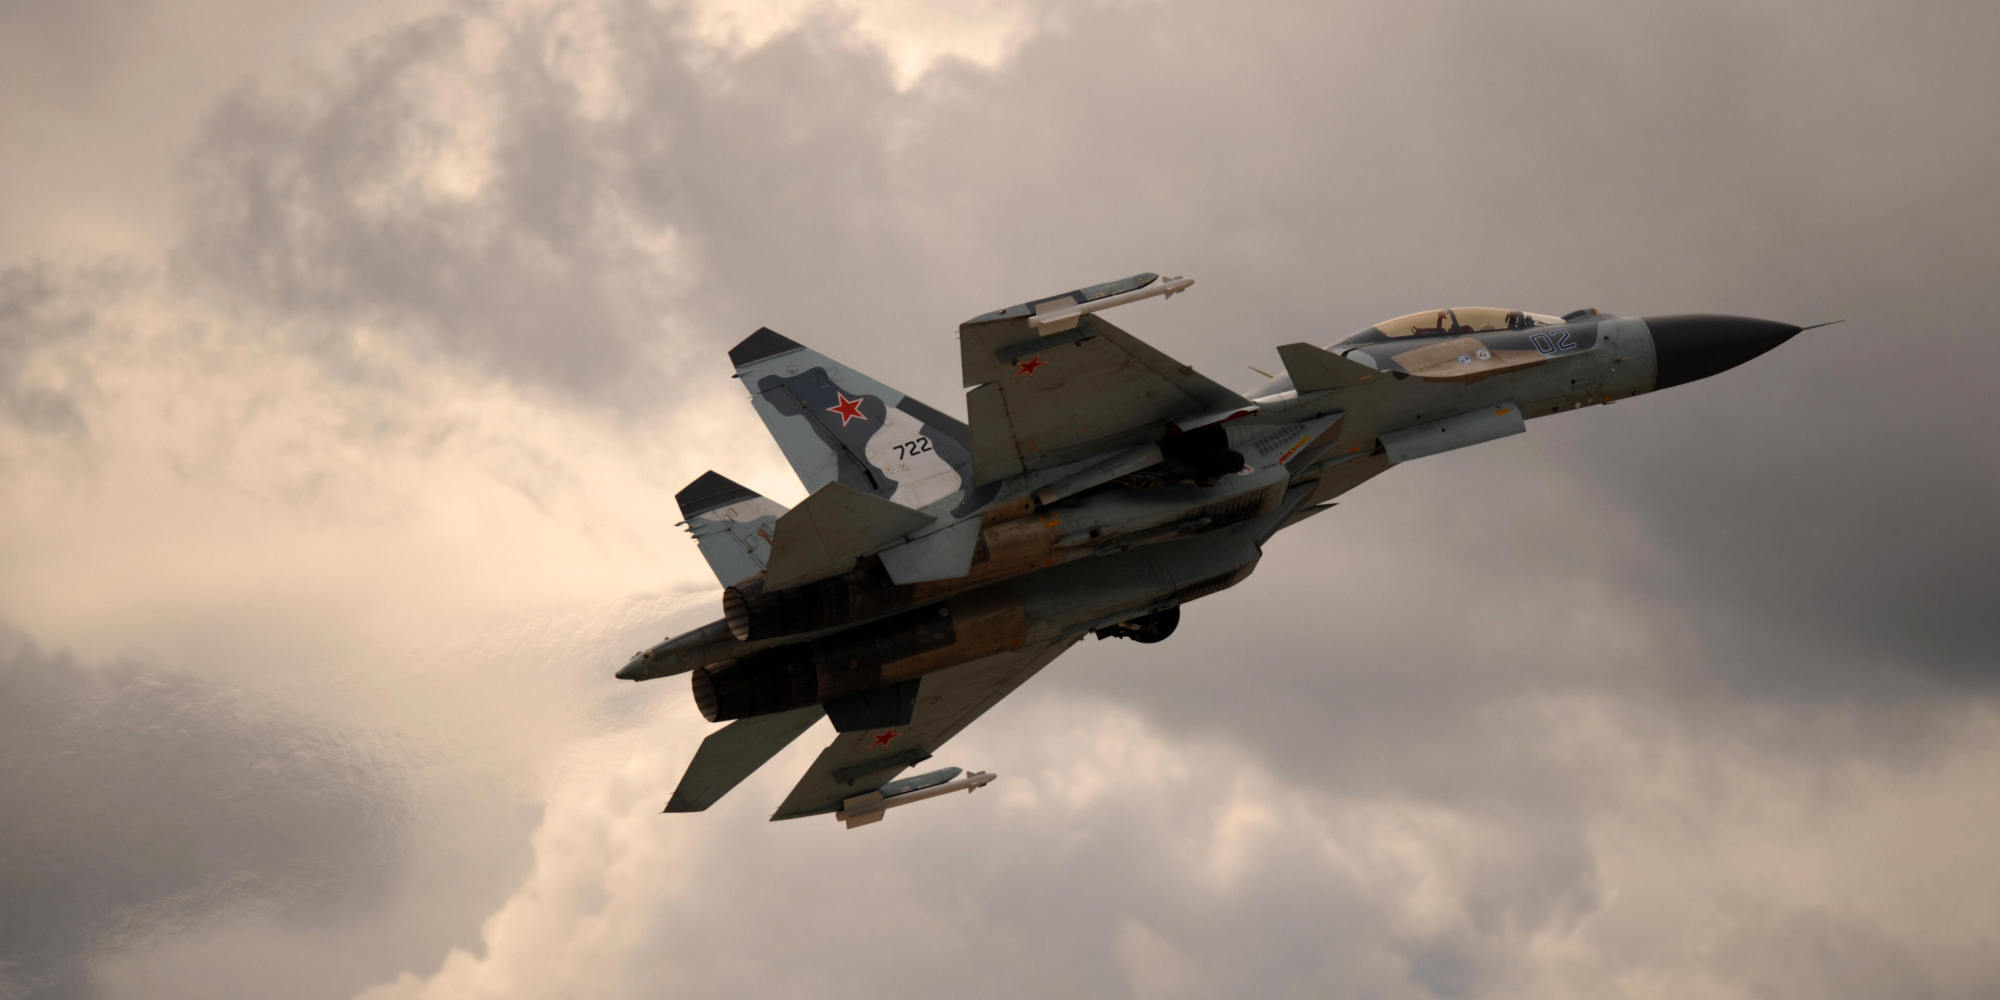 Russian Su-30 fighter on a mission in Syrian airspace.